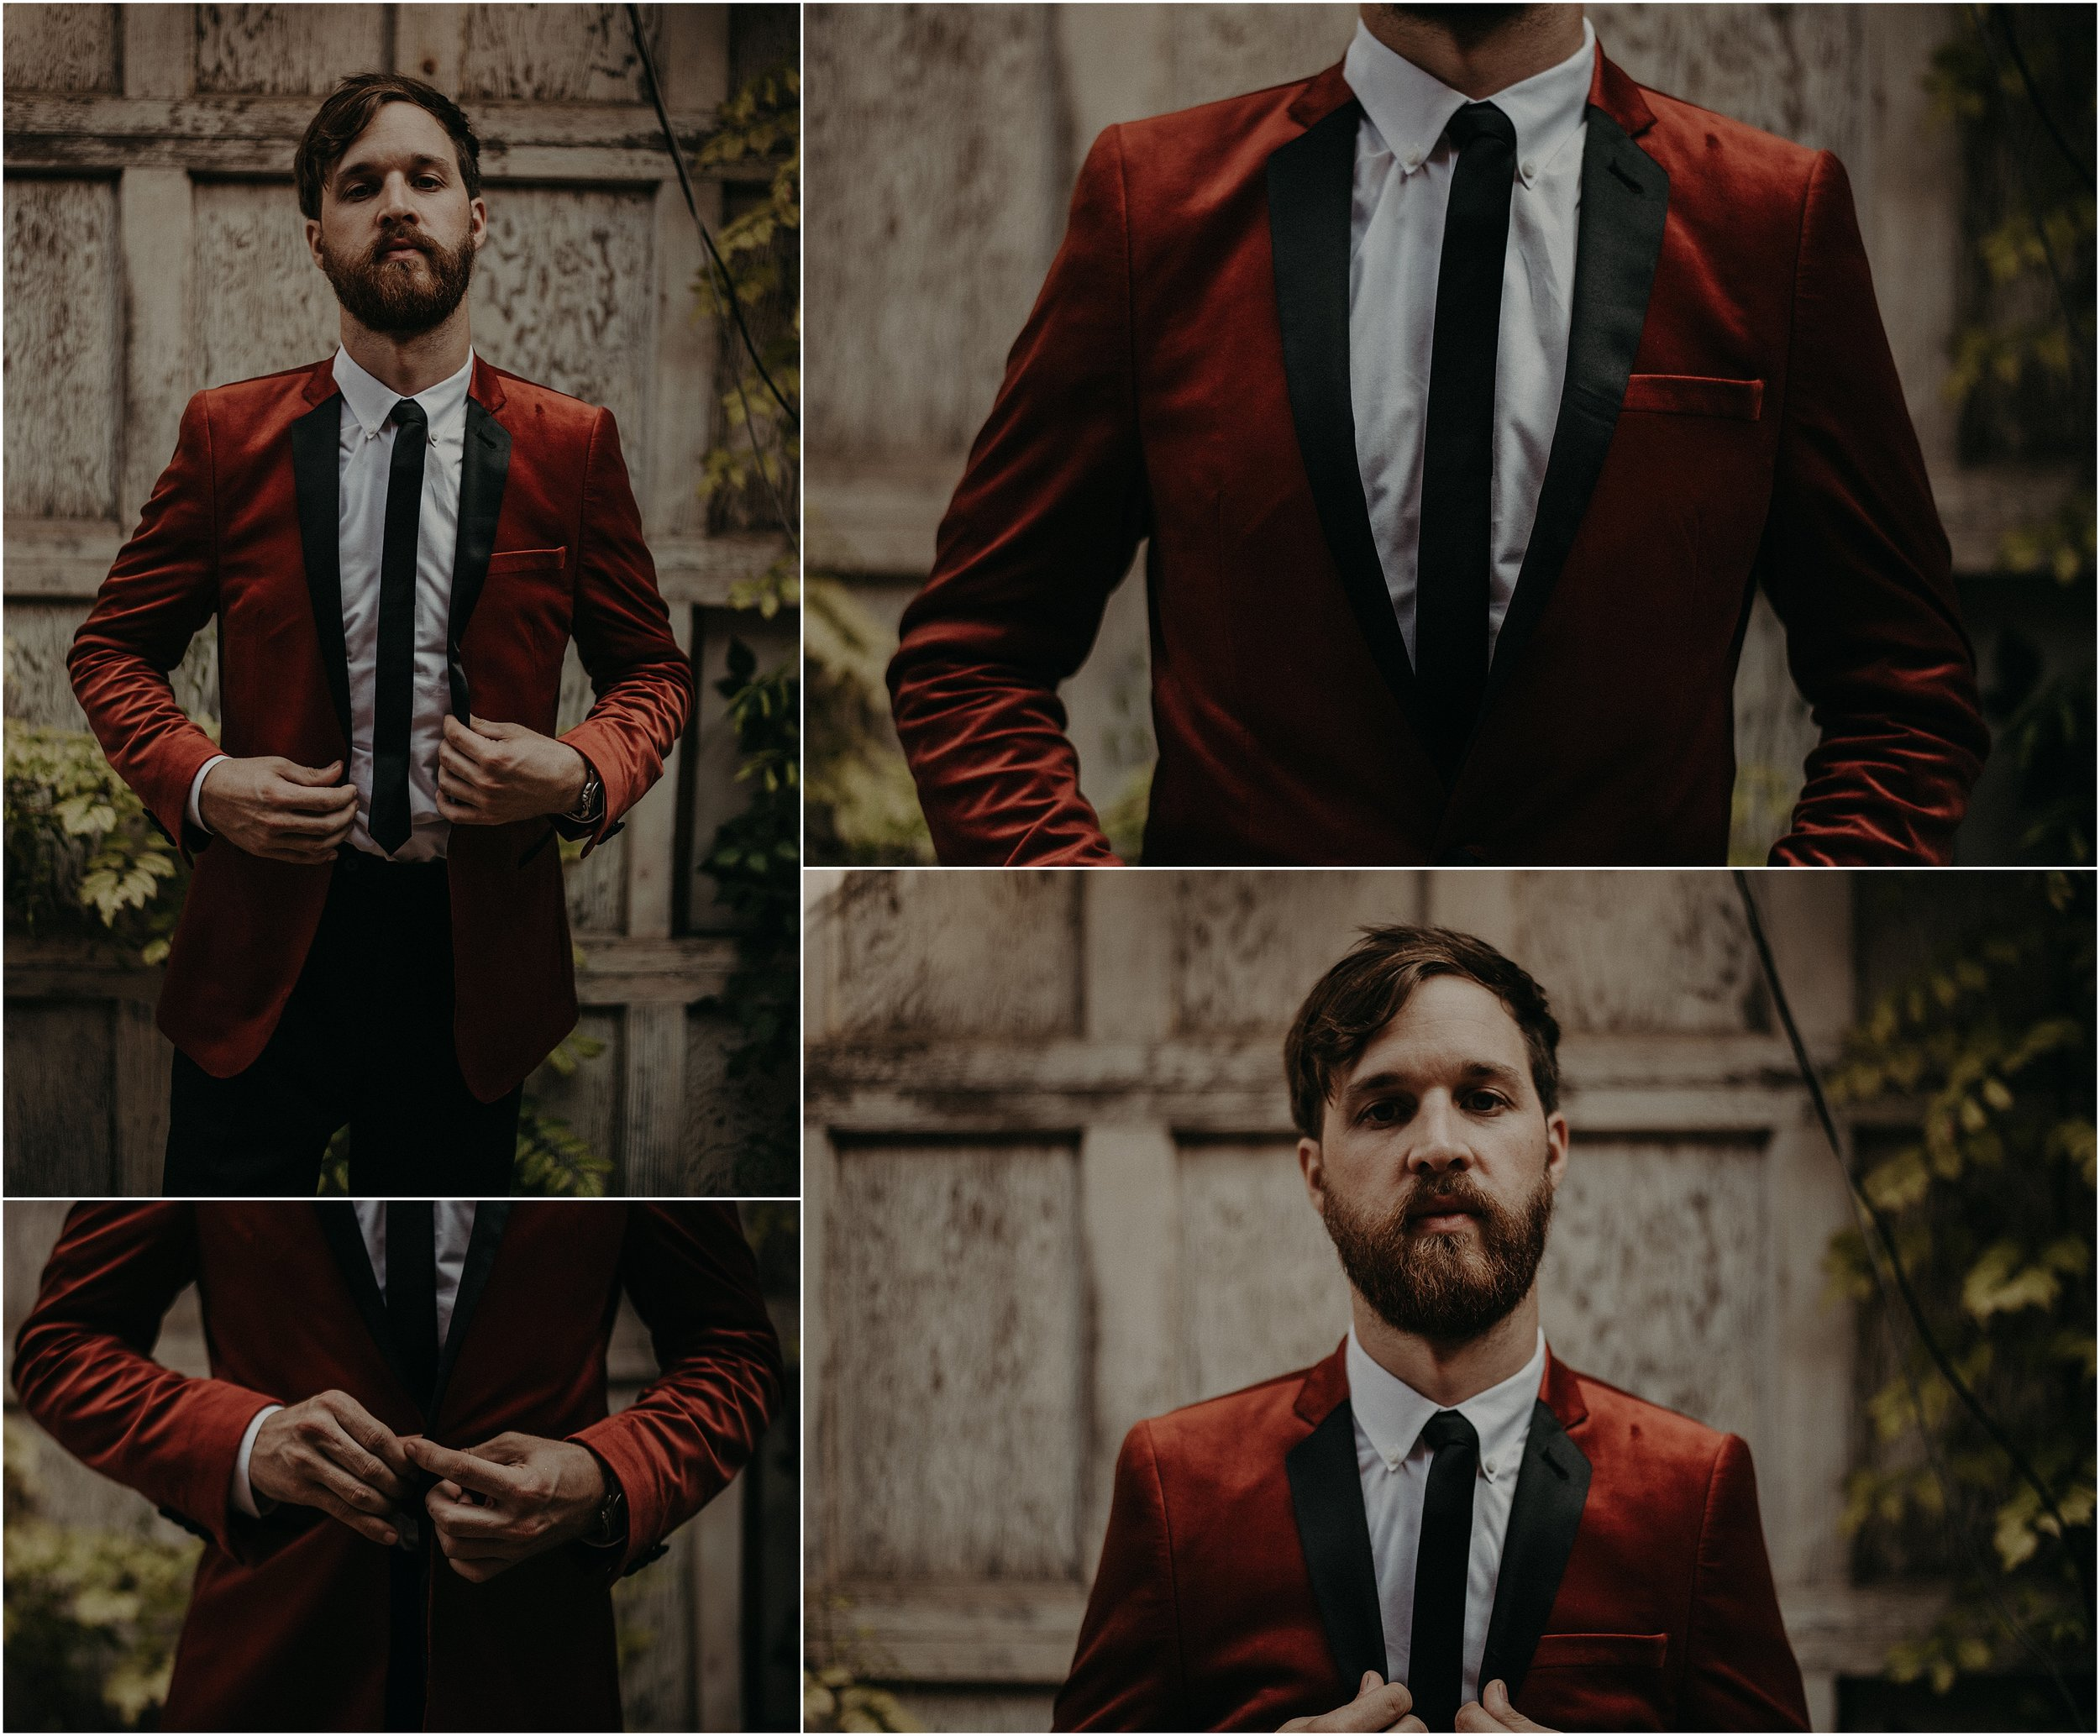 The groom wears a crushed velvet burnt orange ASOS jacket with a skinny black tie